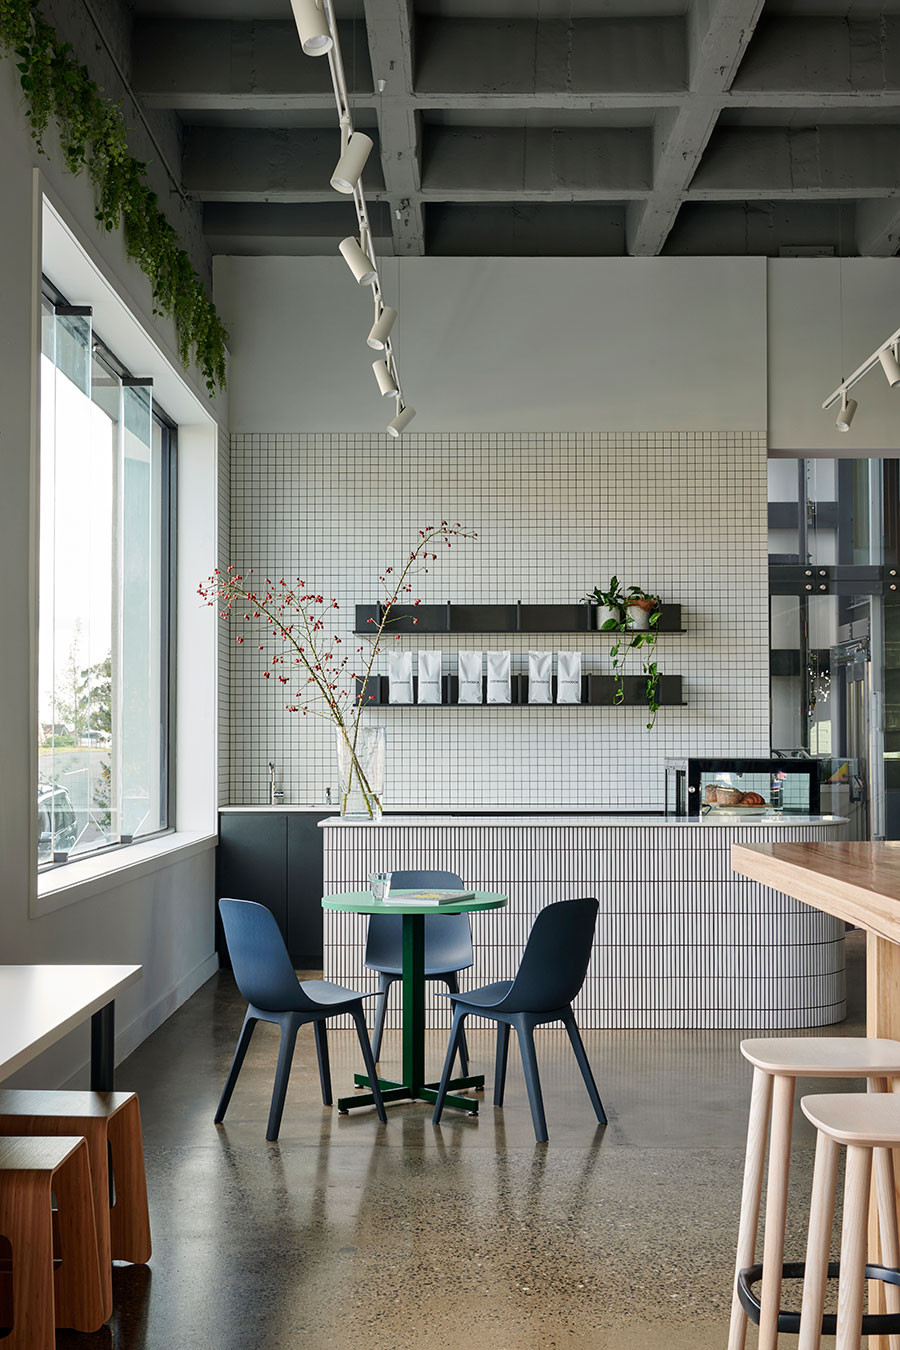 50 Stunning Interior Design Ideas That Will Take Your House To Another Level: Coworking Space, Community Housing, Cafe Interior